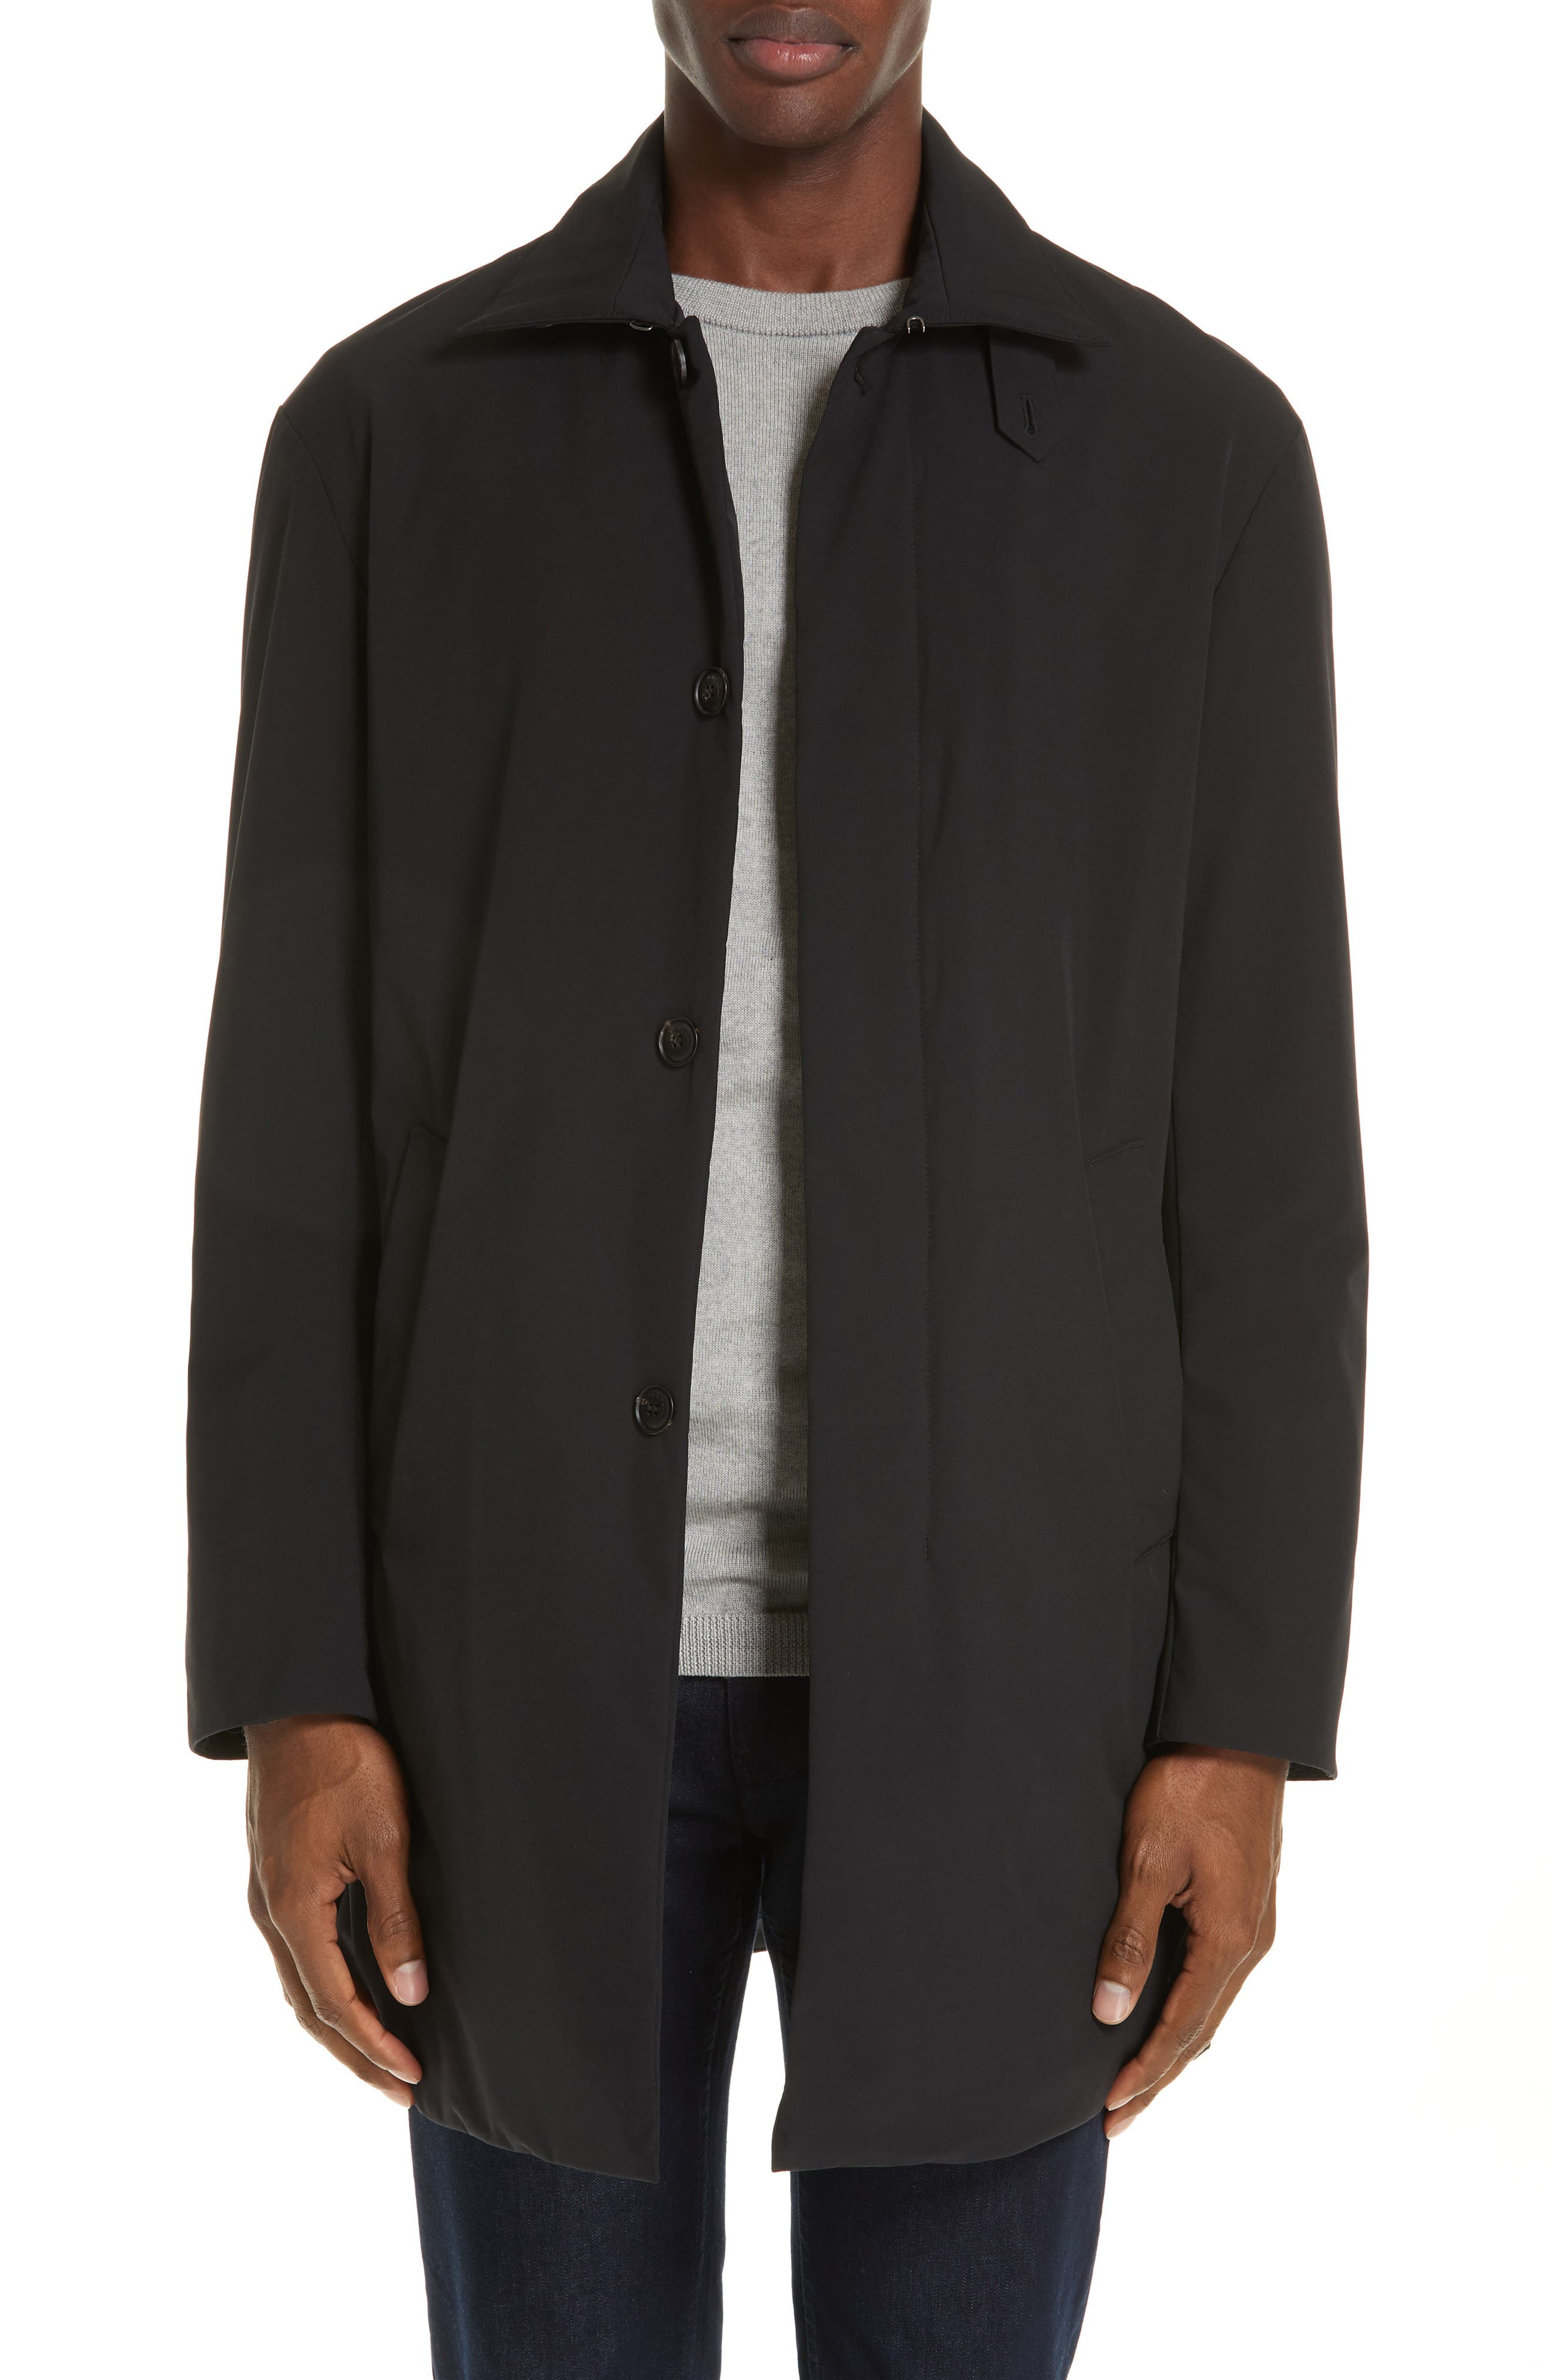 EMPORIO ARMANI,                             Trim Fit Stretch Topcoat,                             Main thumbnail 1, color,                             001